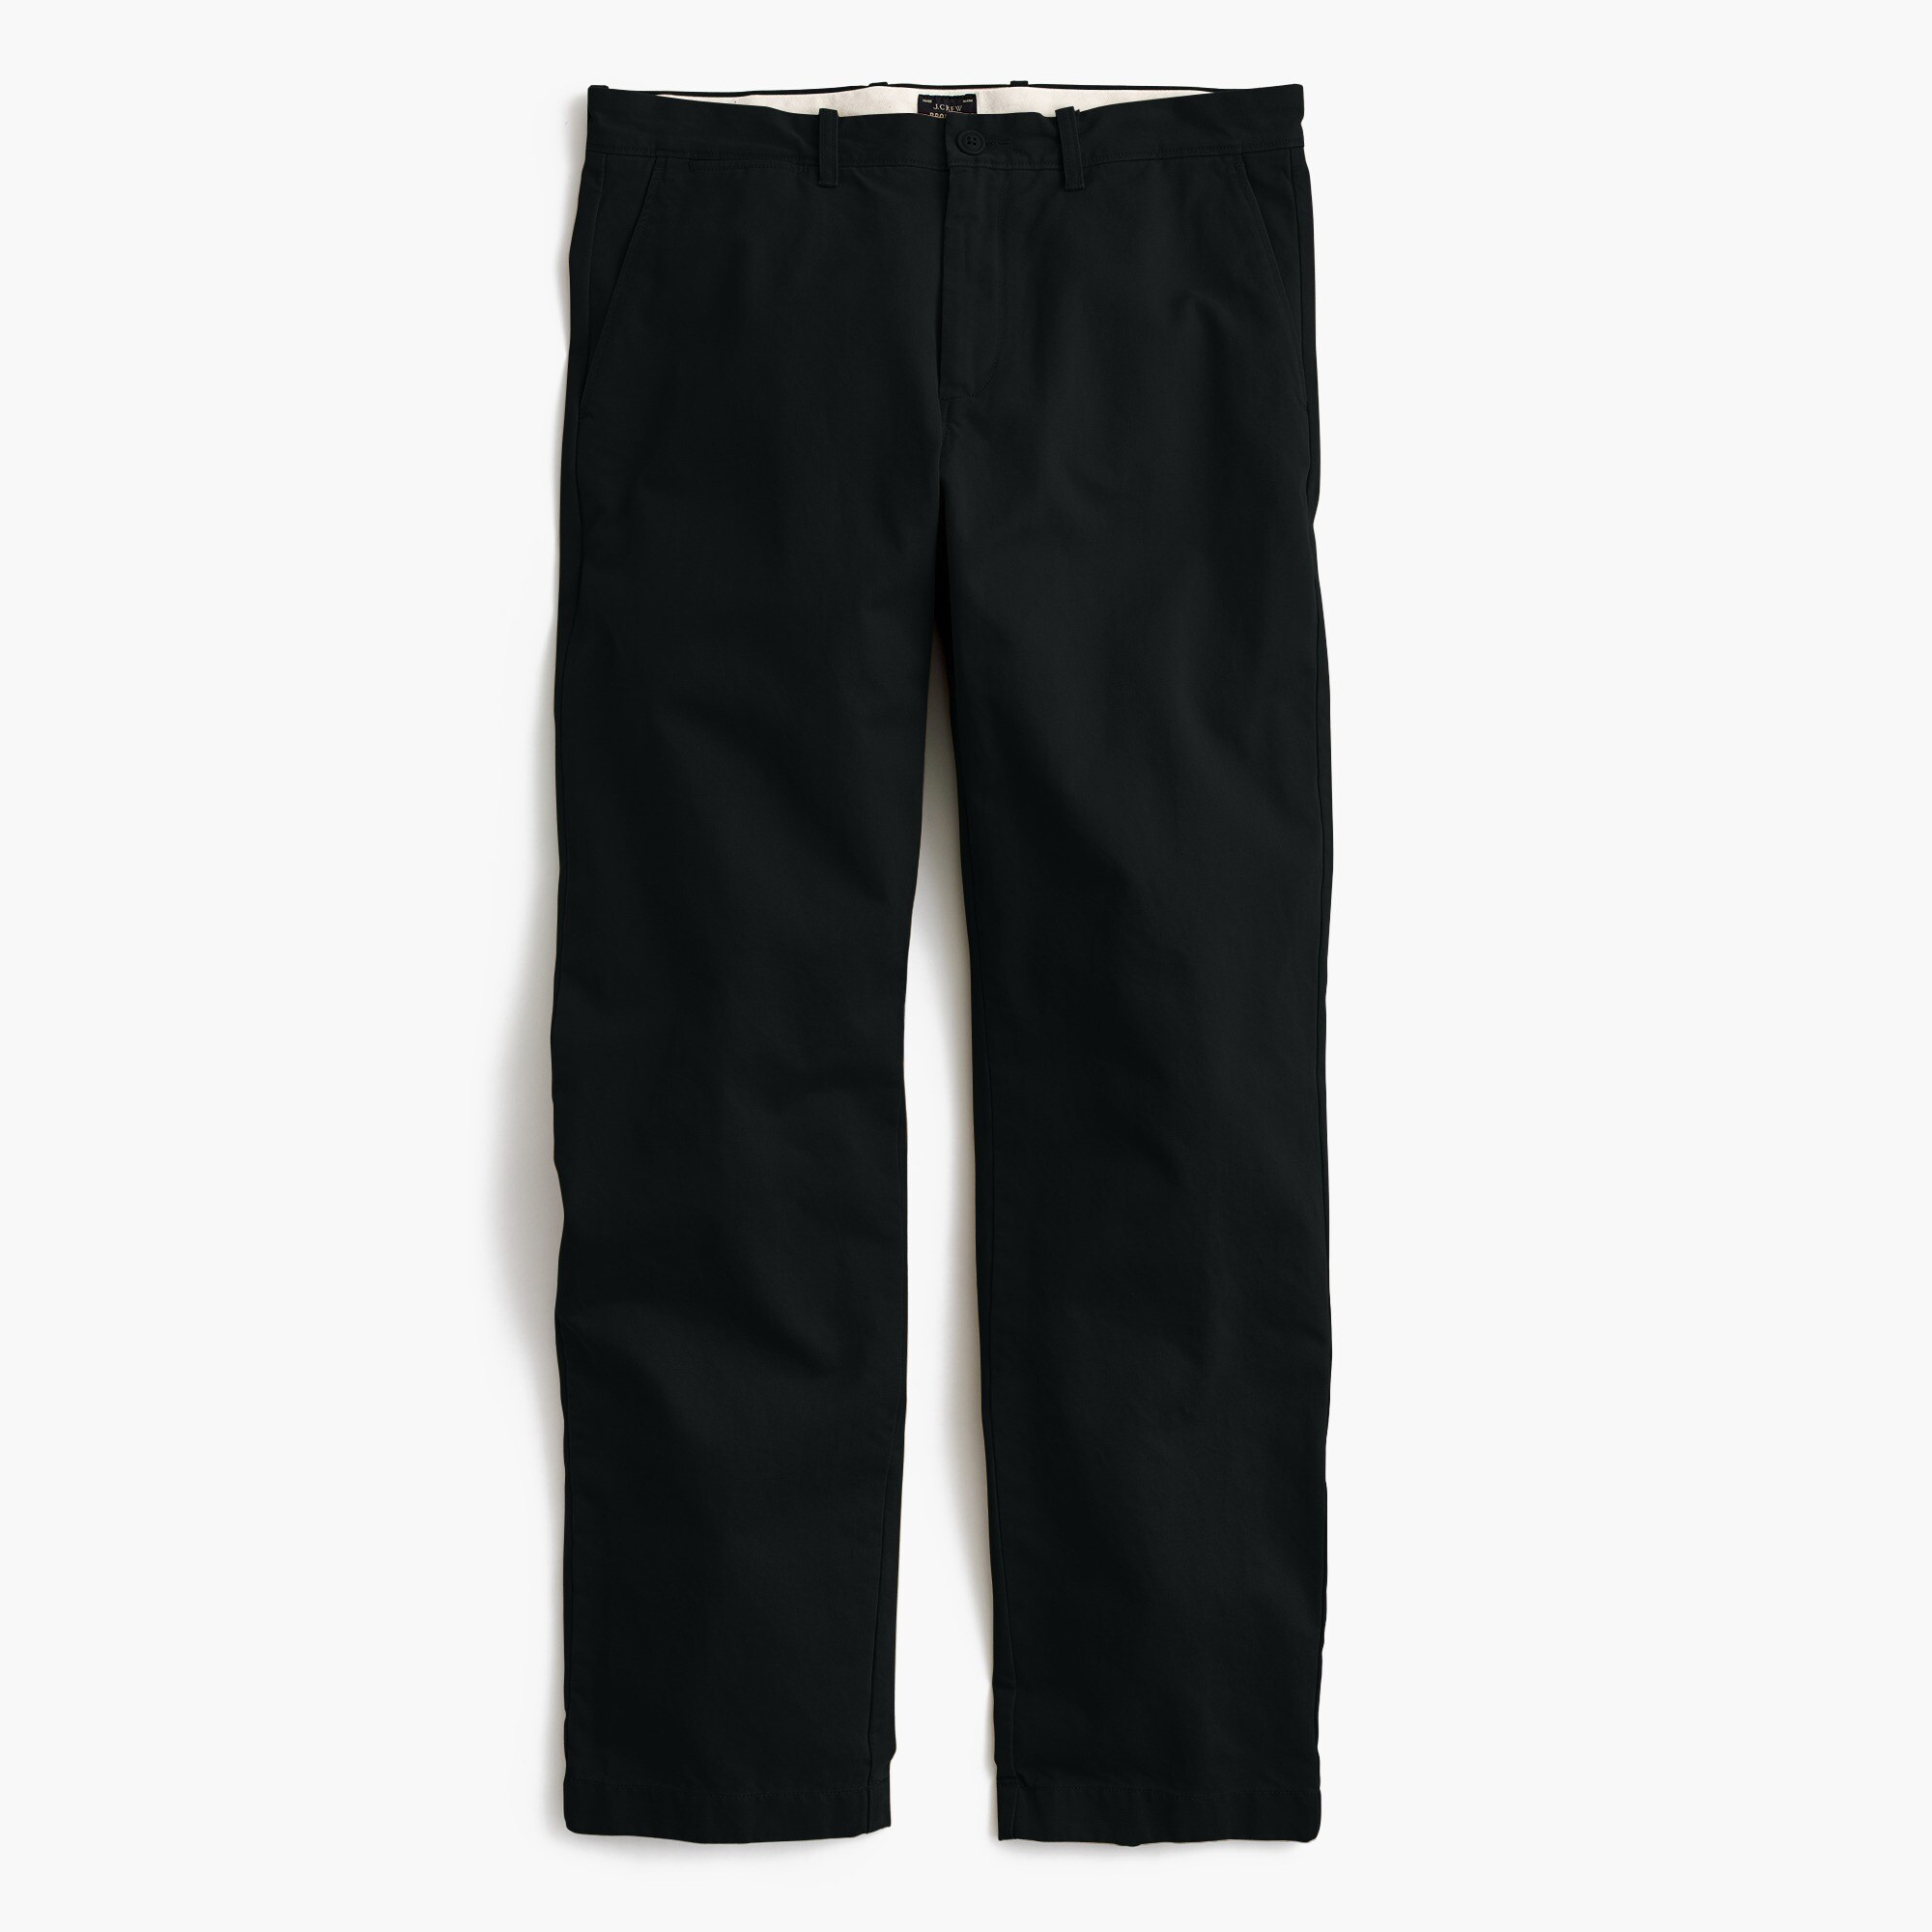 Image 2 for 1450 Relaxed-fit Broken-in chino pant